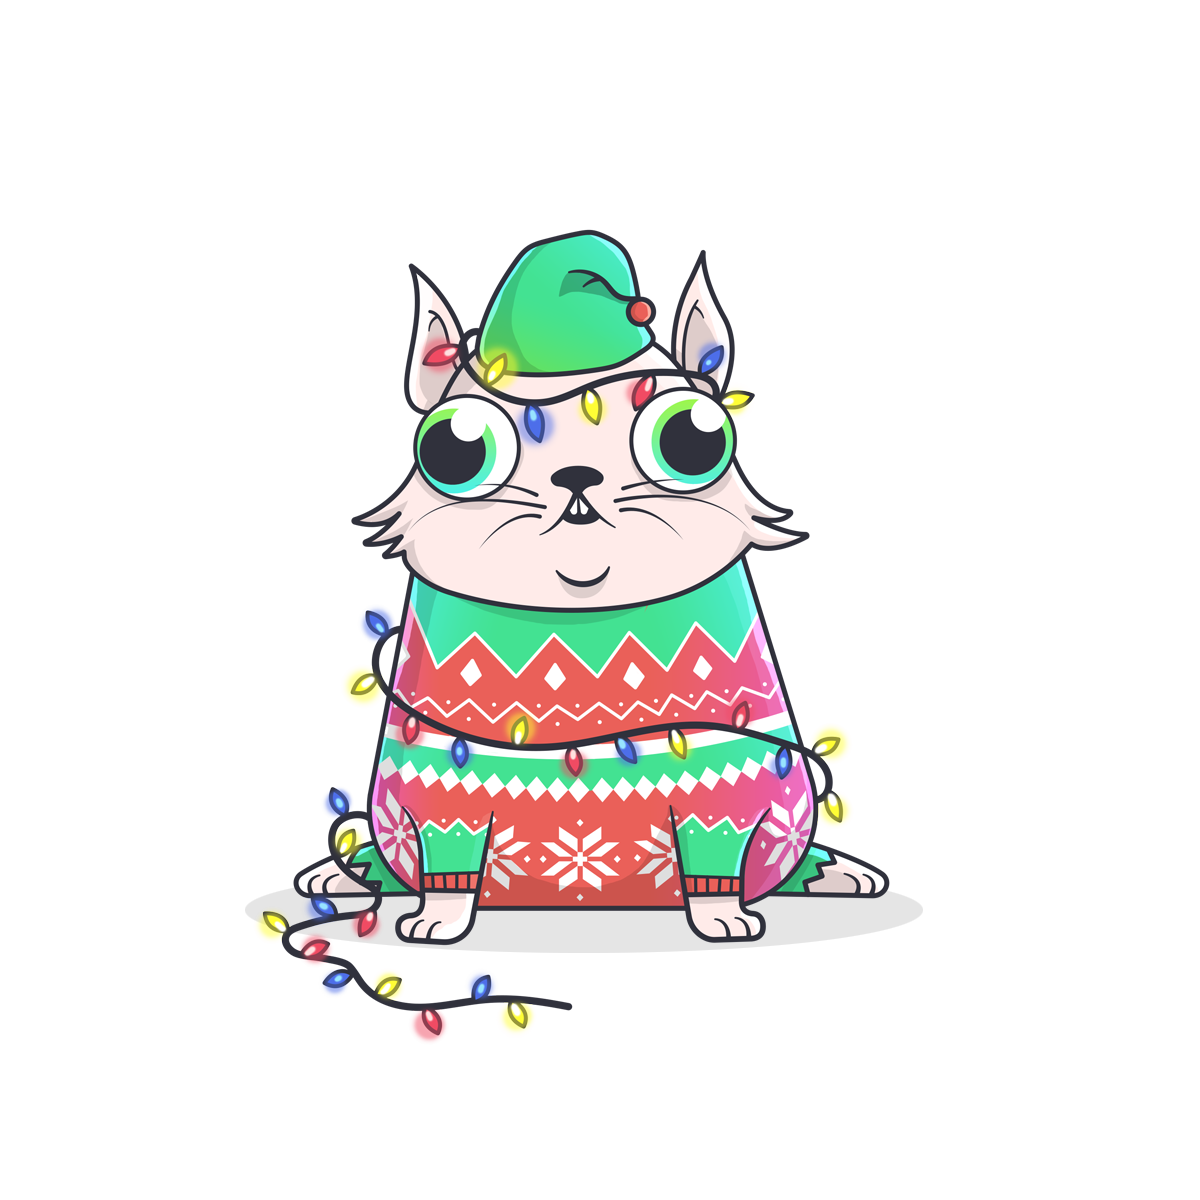 cryptokitty #460500